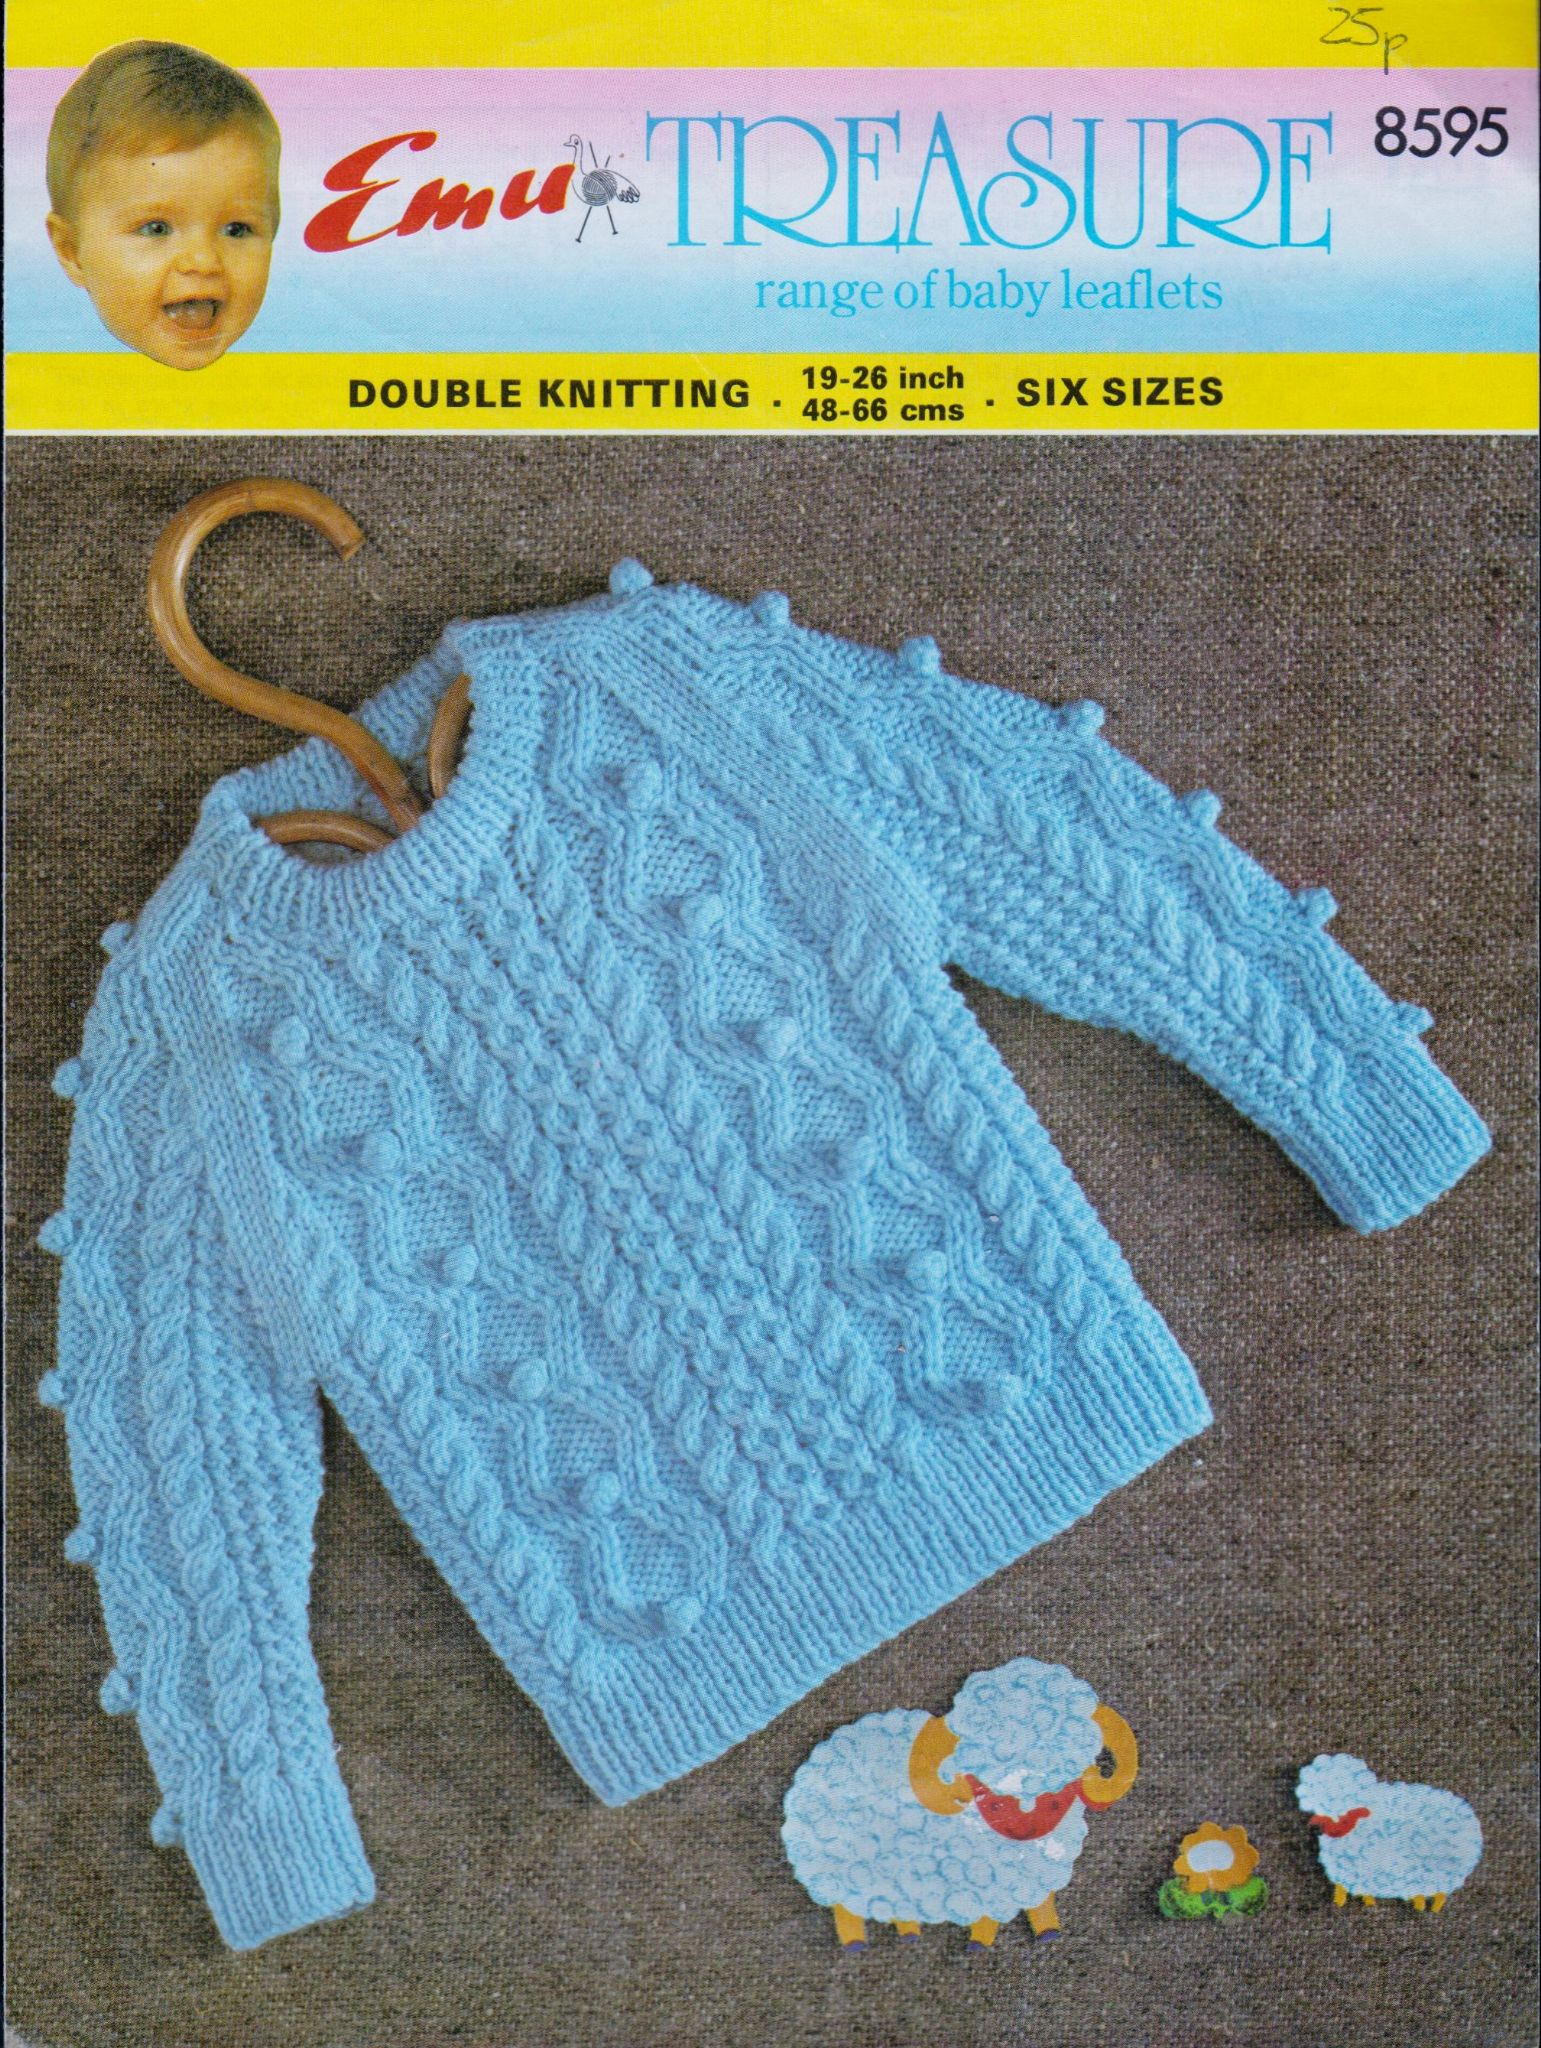 Double Knitting Baby Patterns Pdf Knitting Pattern Emu 8595 Ba Childs Cable Sweater In Double Knitting Chest 19 26